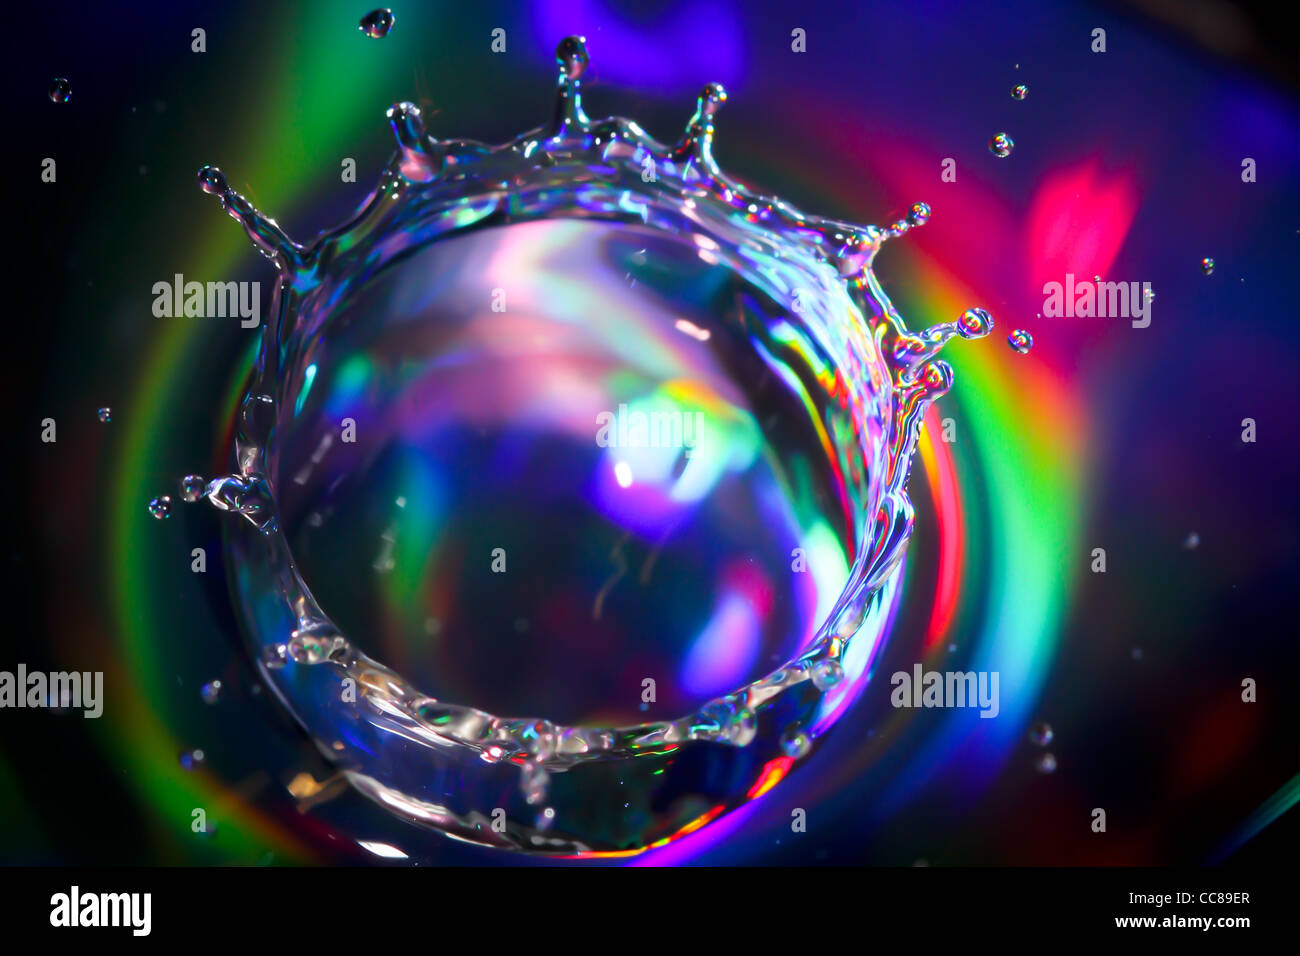 A colourful water droplet - Stock Image